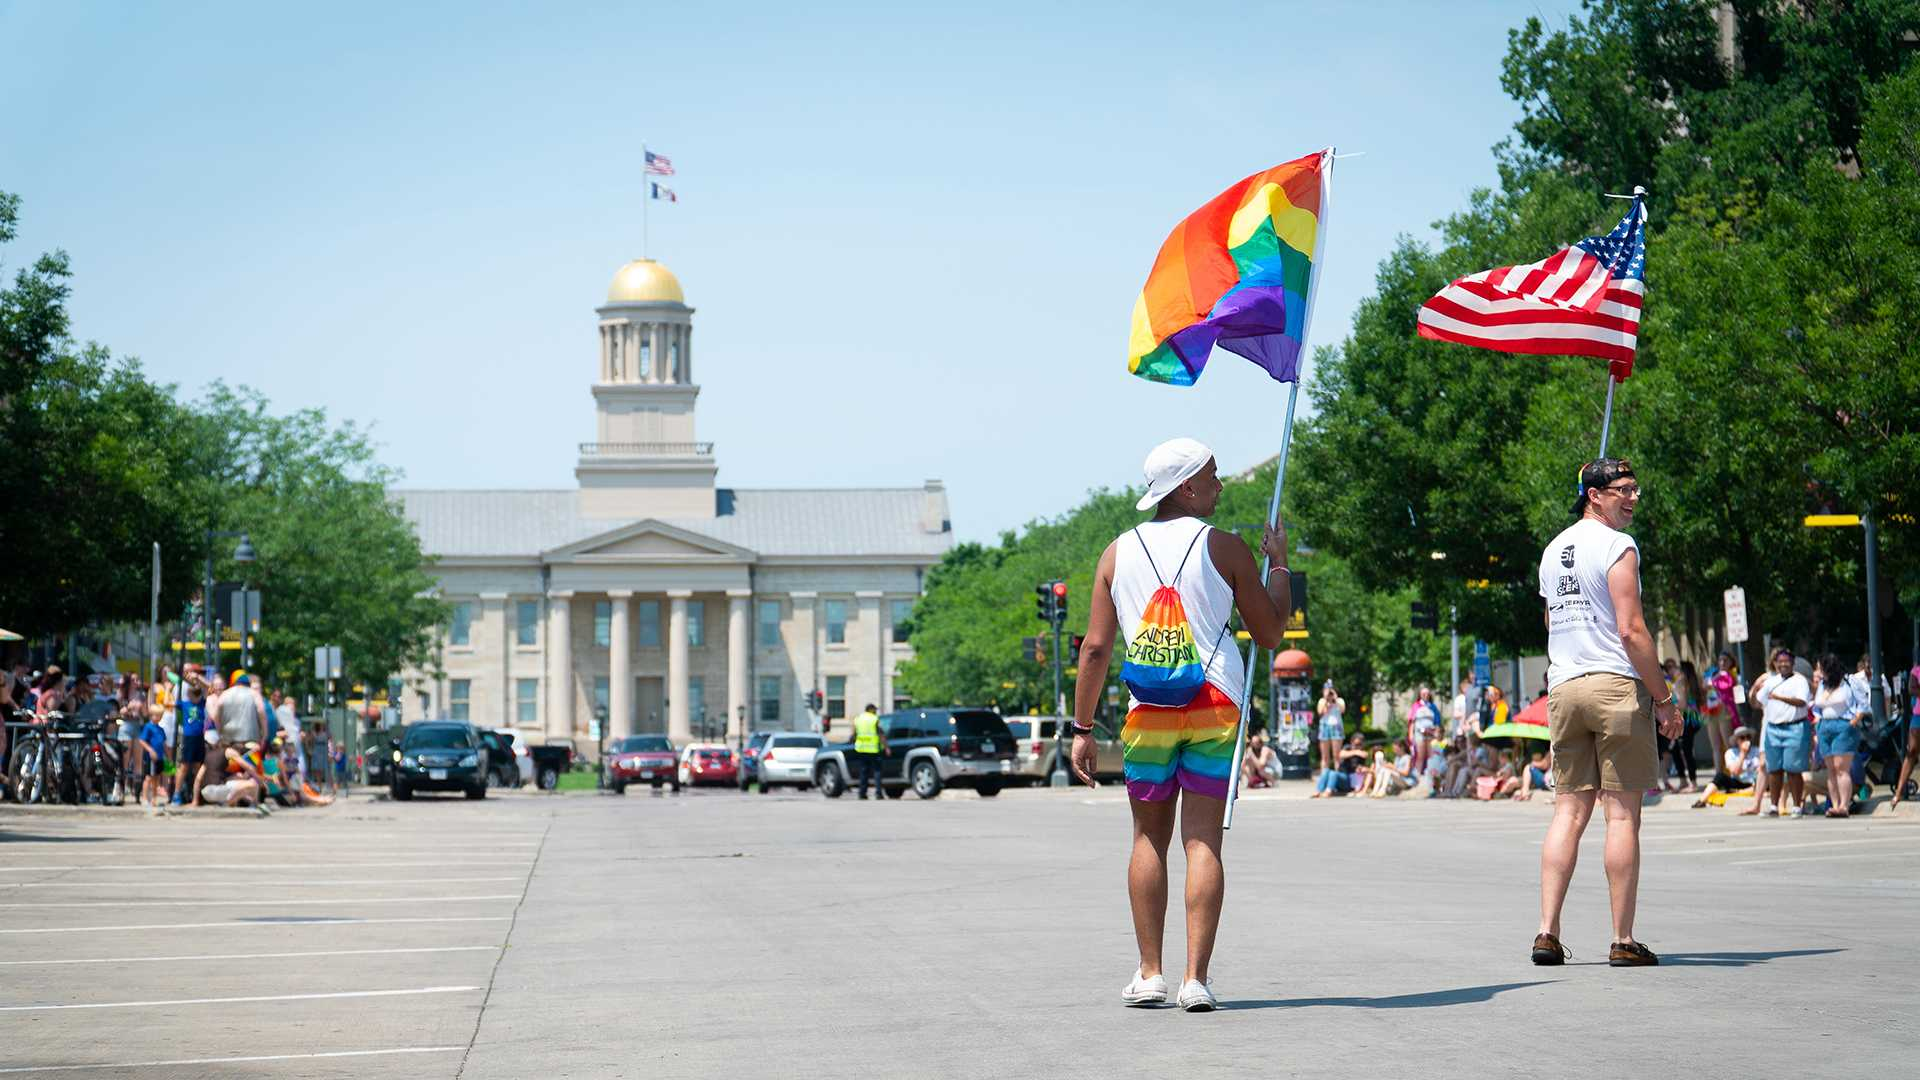 Participants of the pride parade walk towards the old capital. (Roman Slabach/The Daily Iowan)